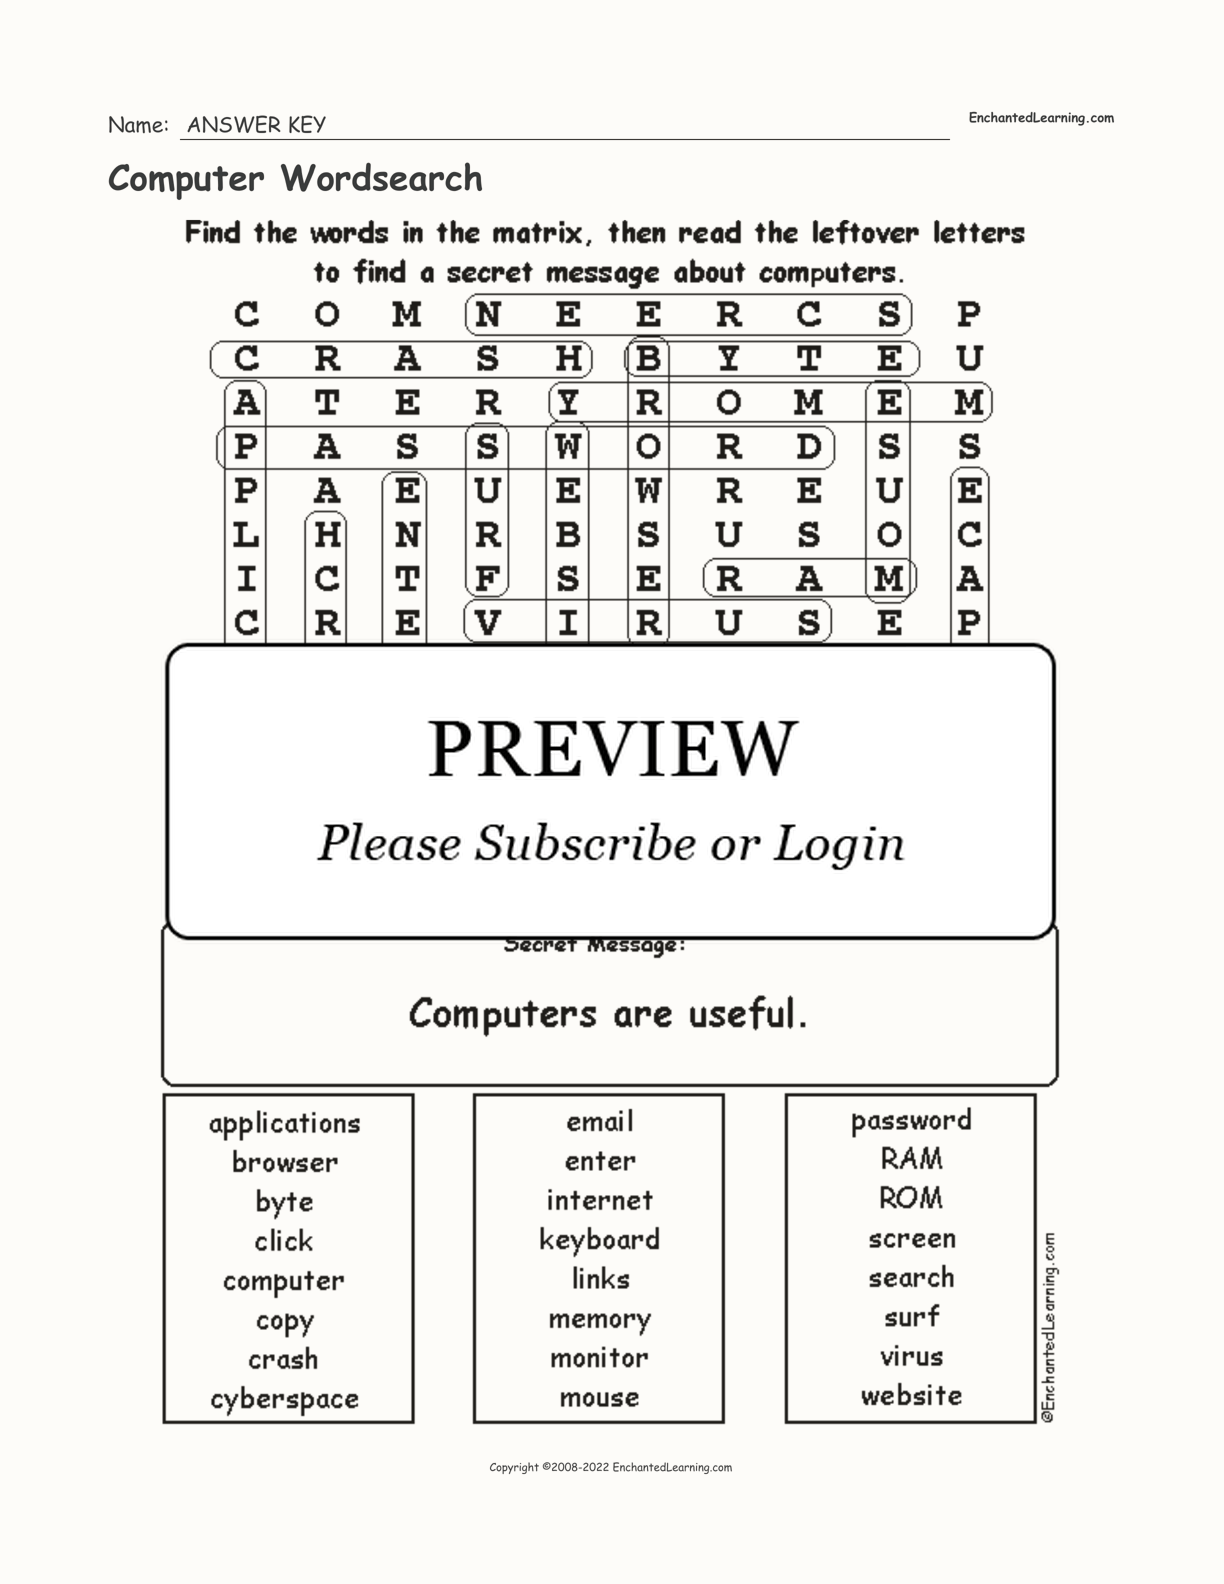 Computer Wordsearch